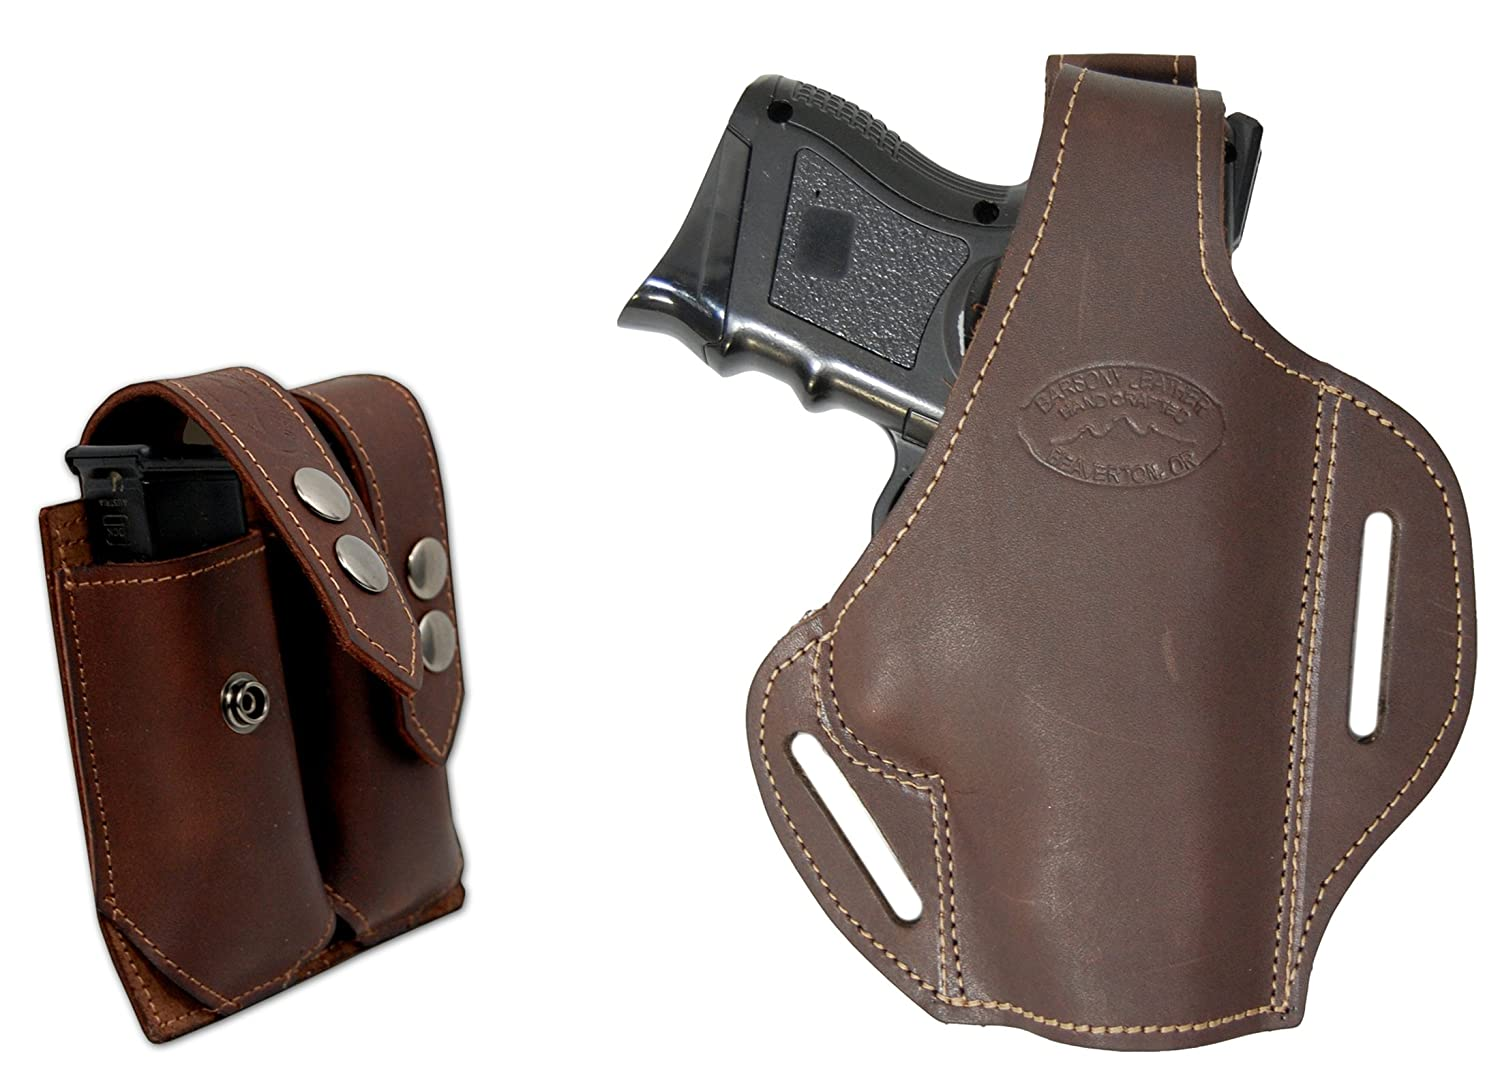 New Barsony Burgundy Leather Yaqui Holster Mag Pouch Astra Beretta Compact 9mm